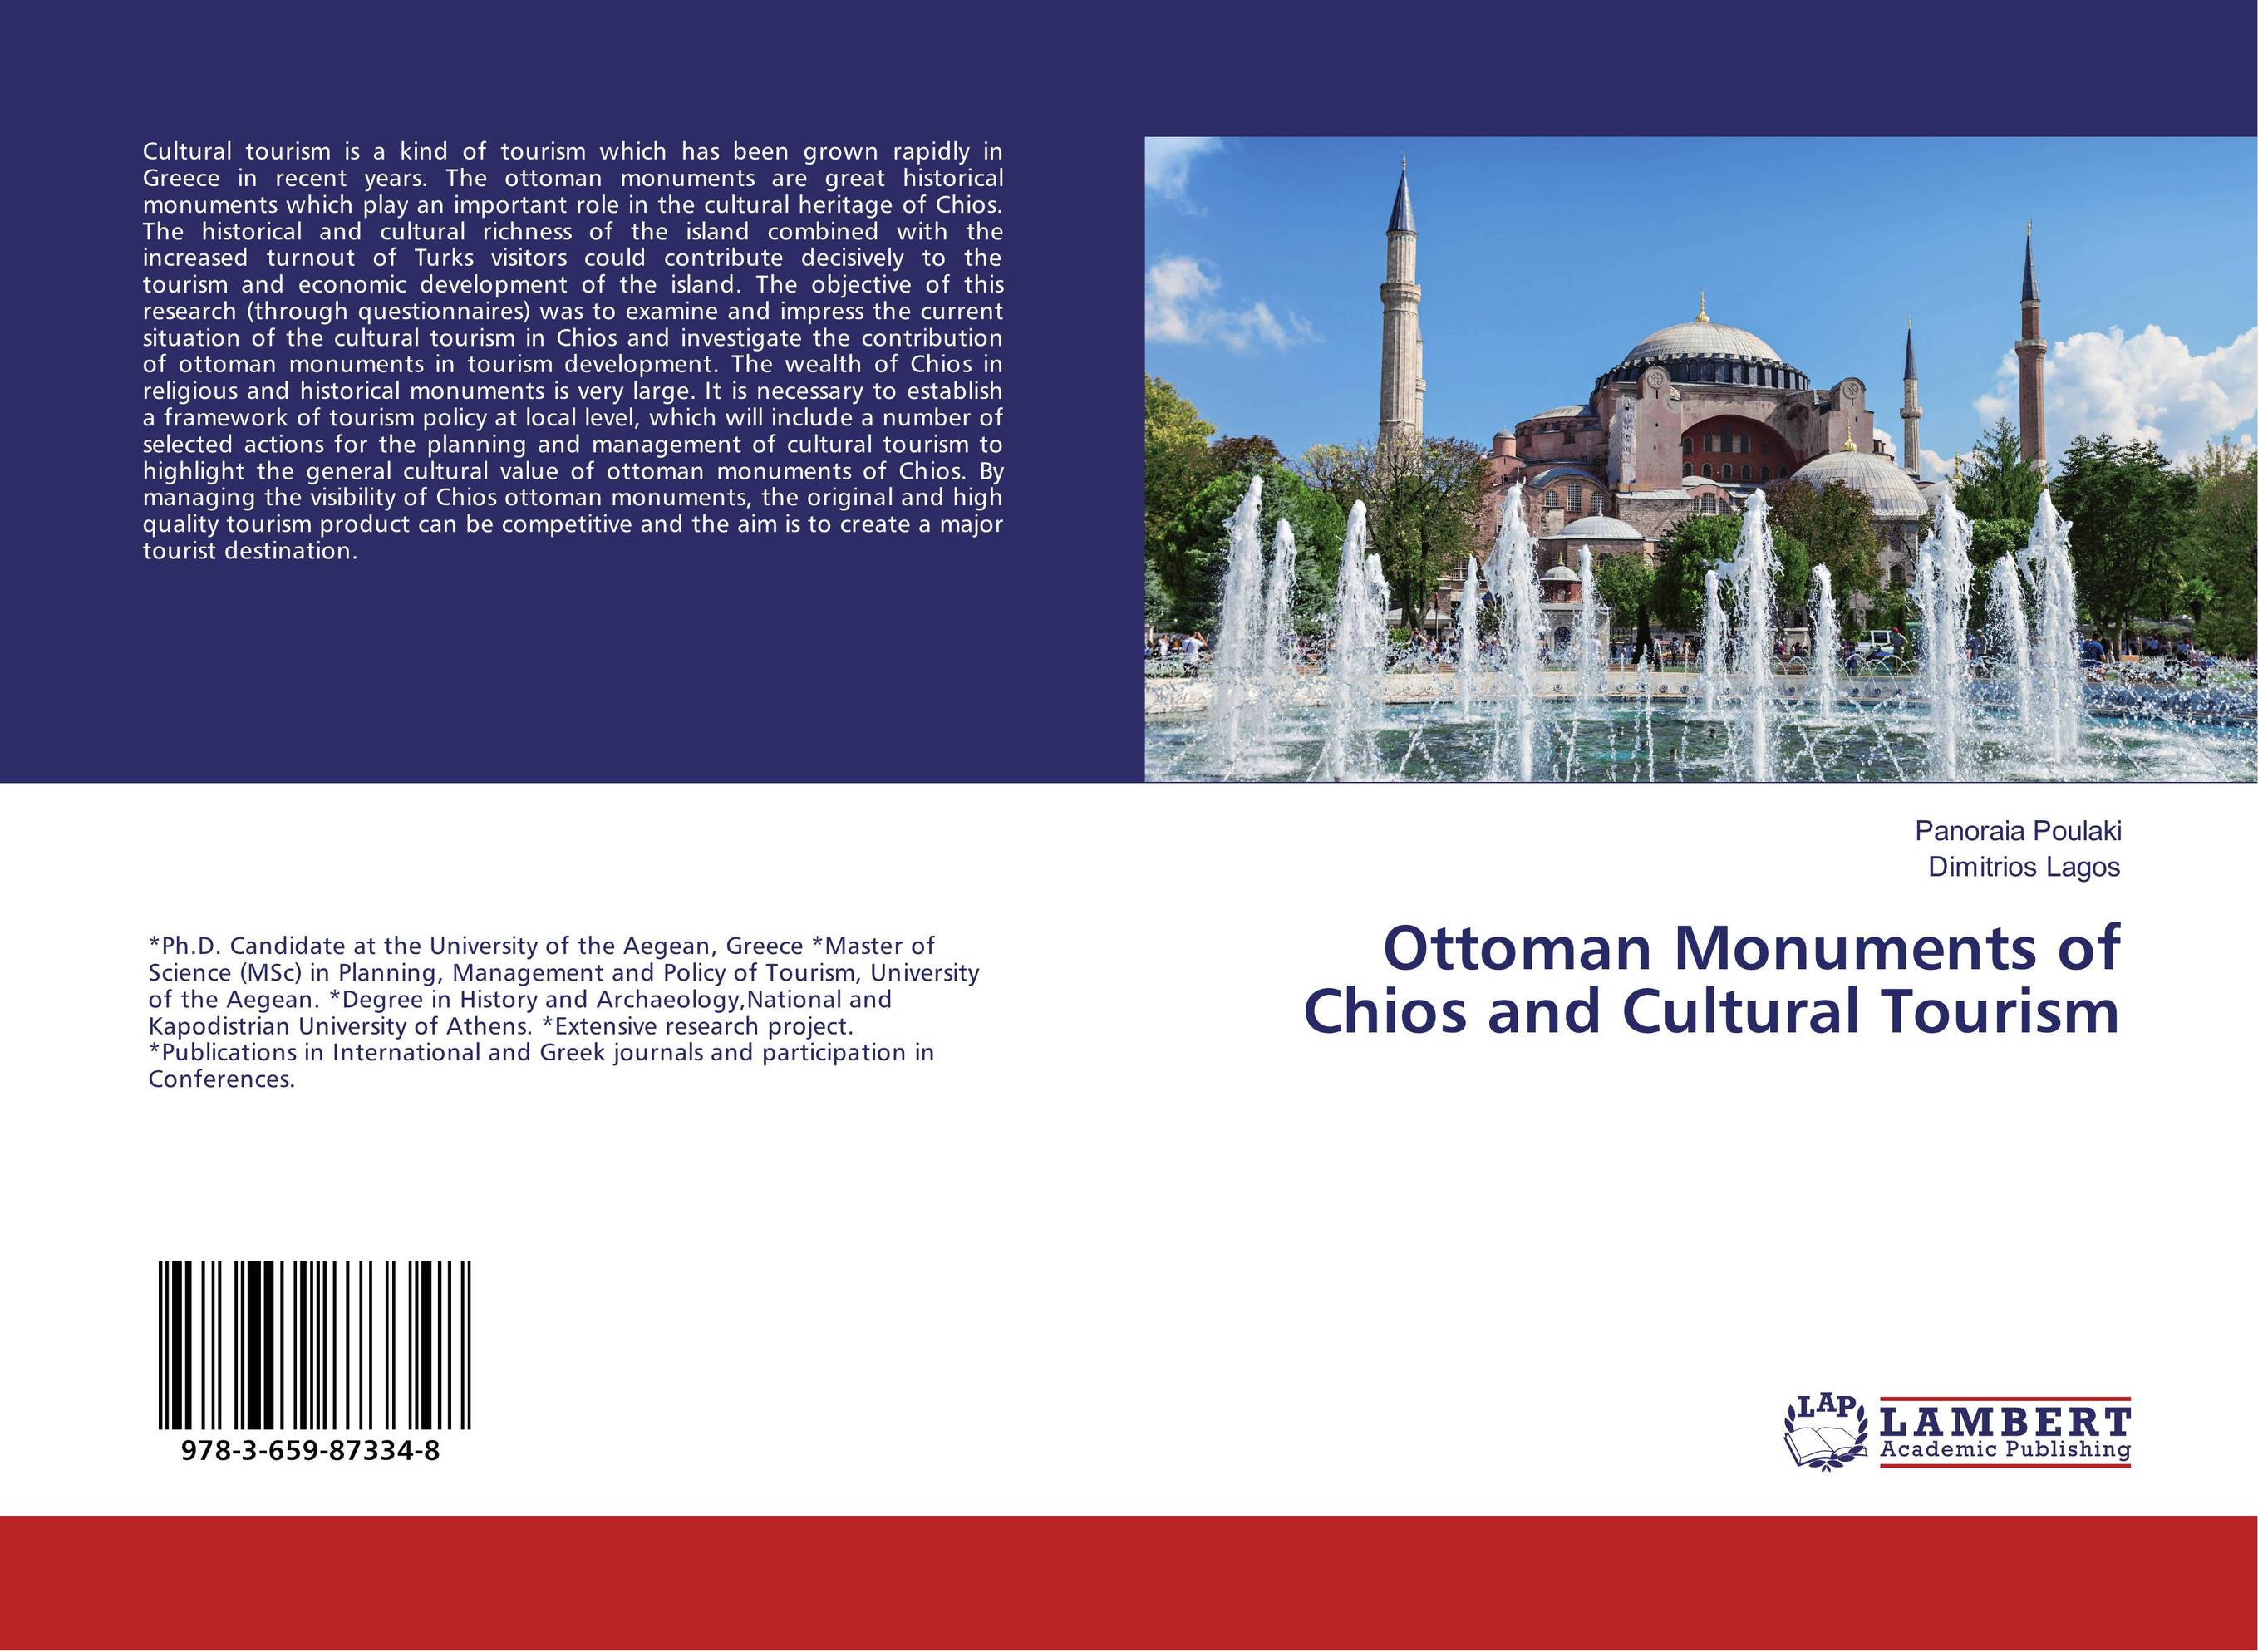 Ottoman Monuments of Chios and Cultural Tourism